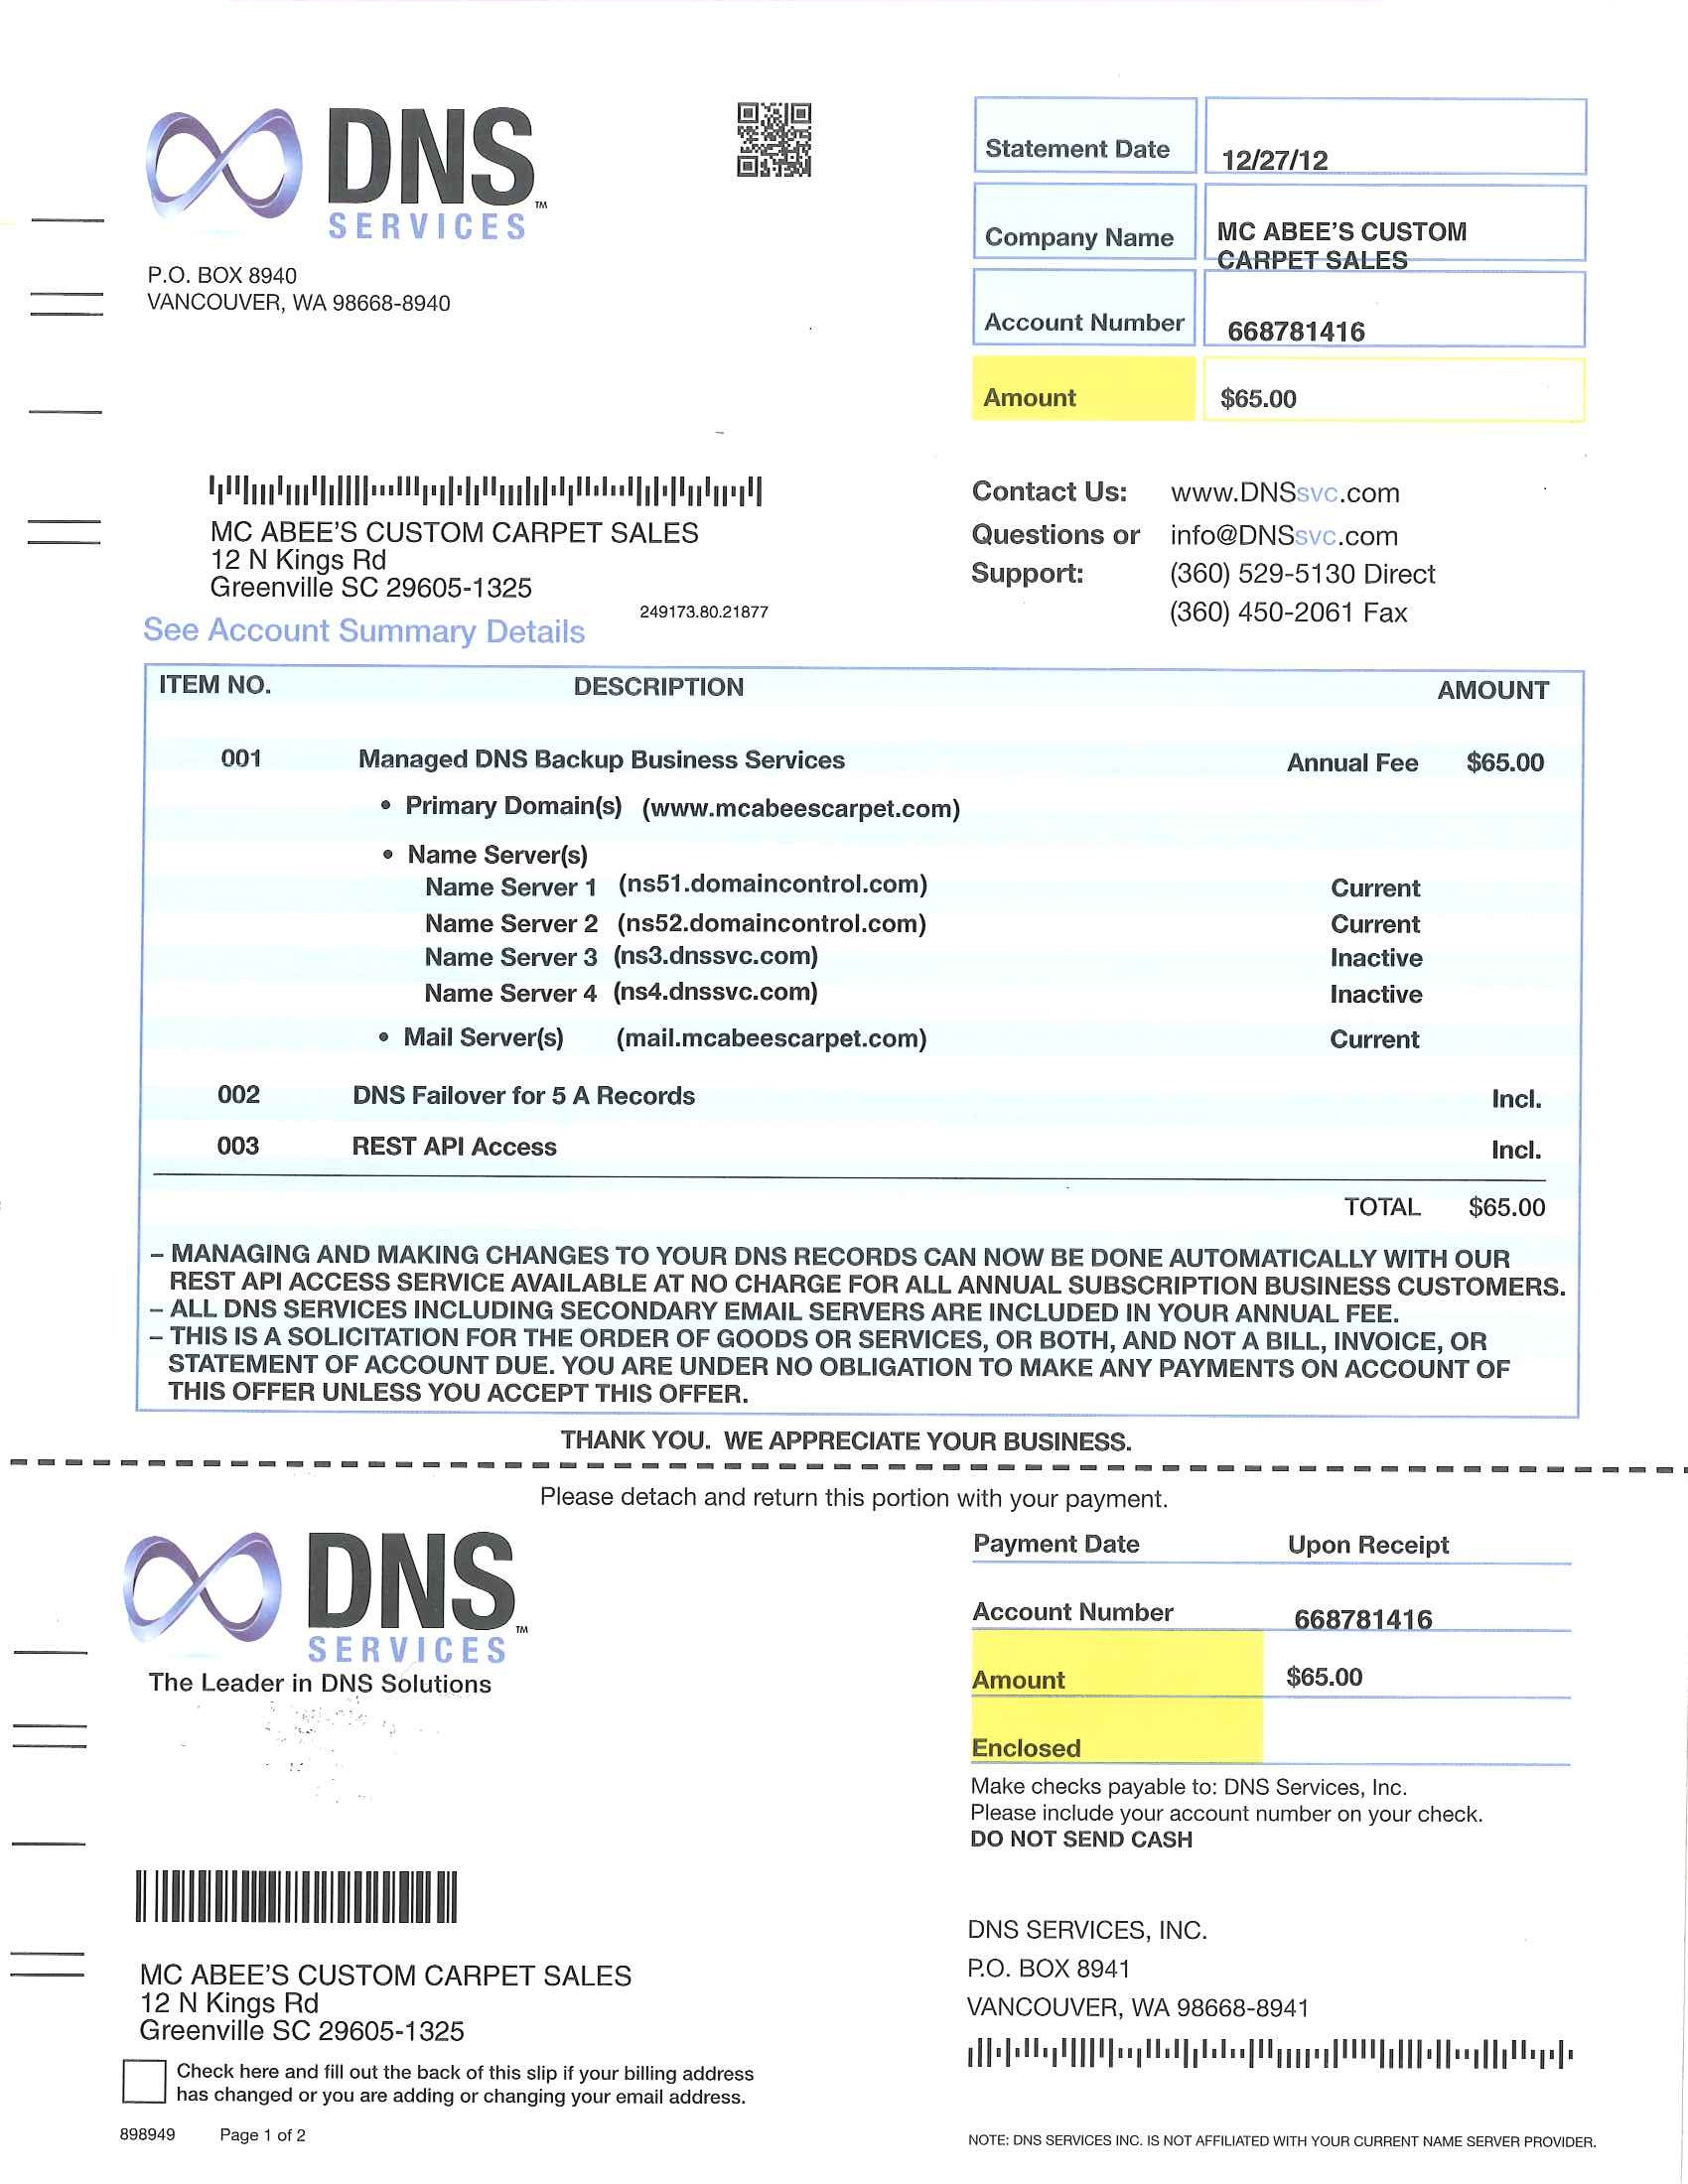 DNS Services bill invoice scam